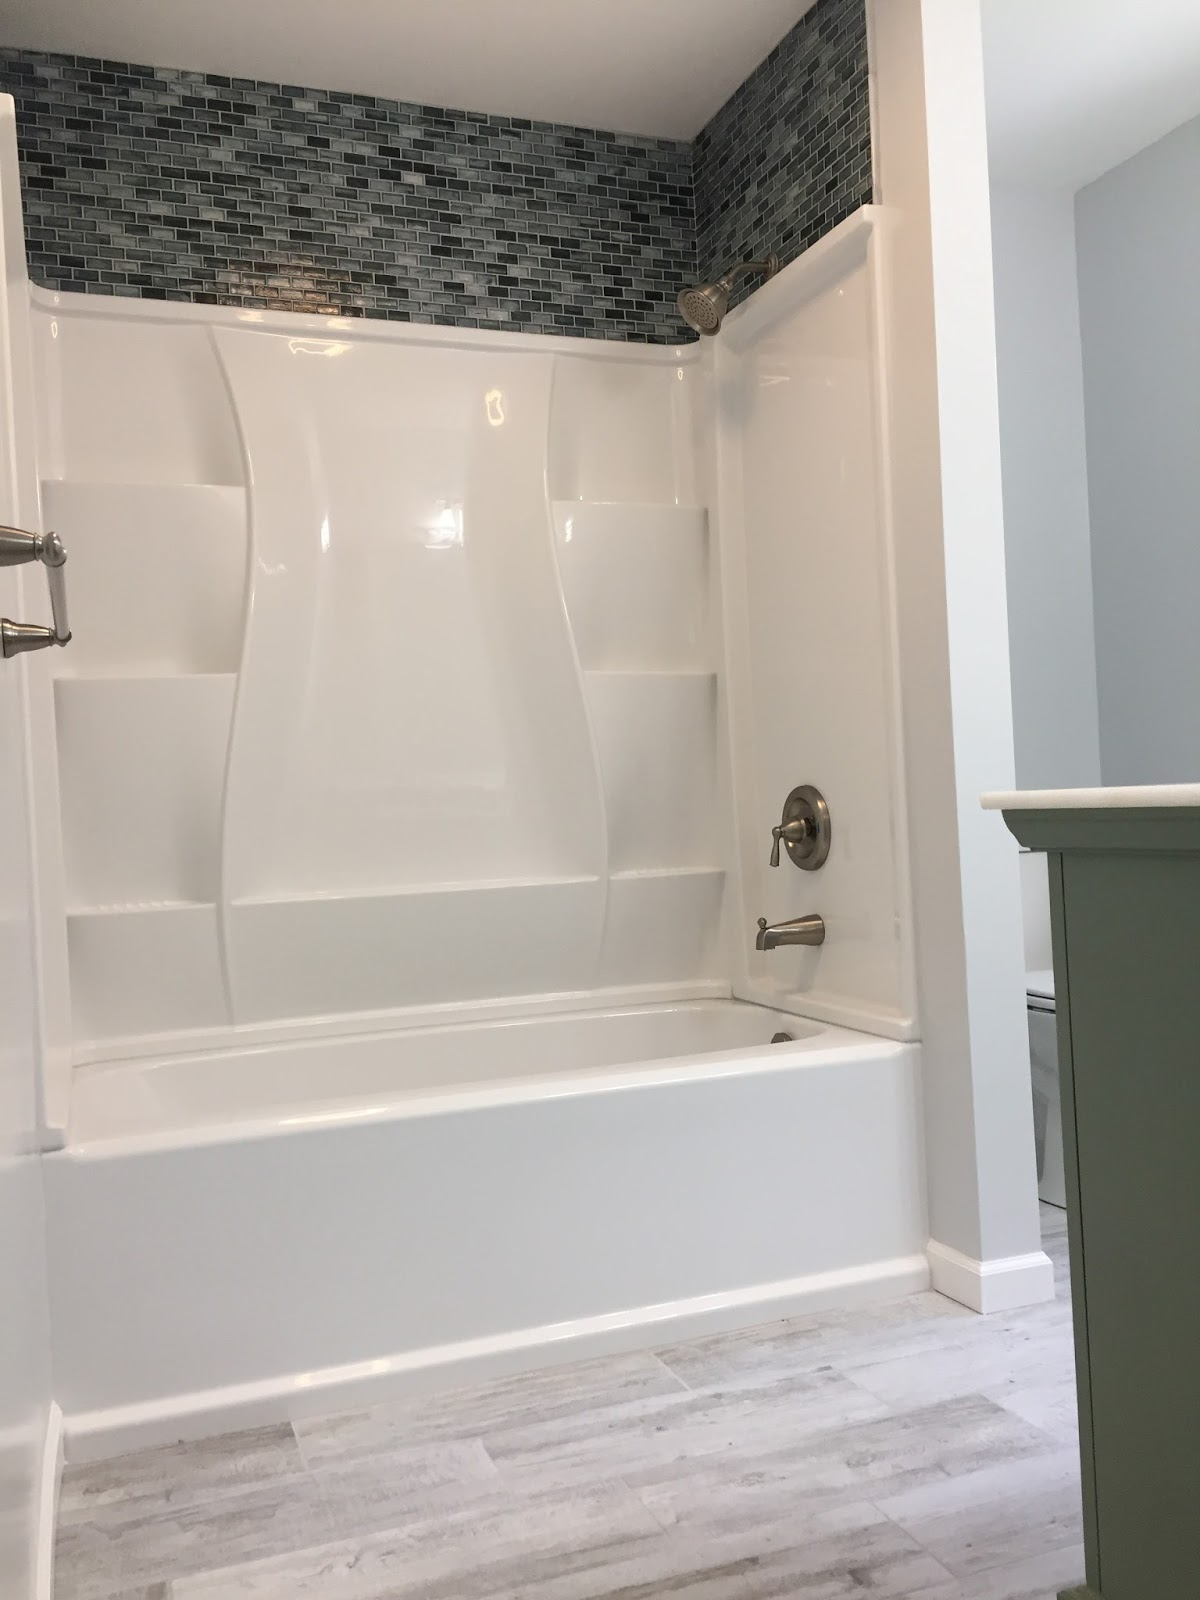 Delta Clic 400 Acrylic Soaking Tub In High Gloss White With The Matching